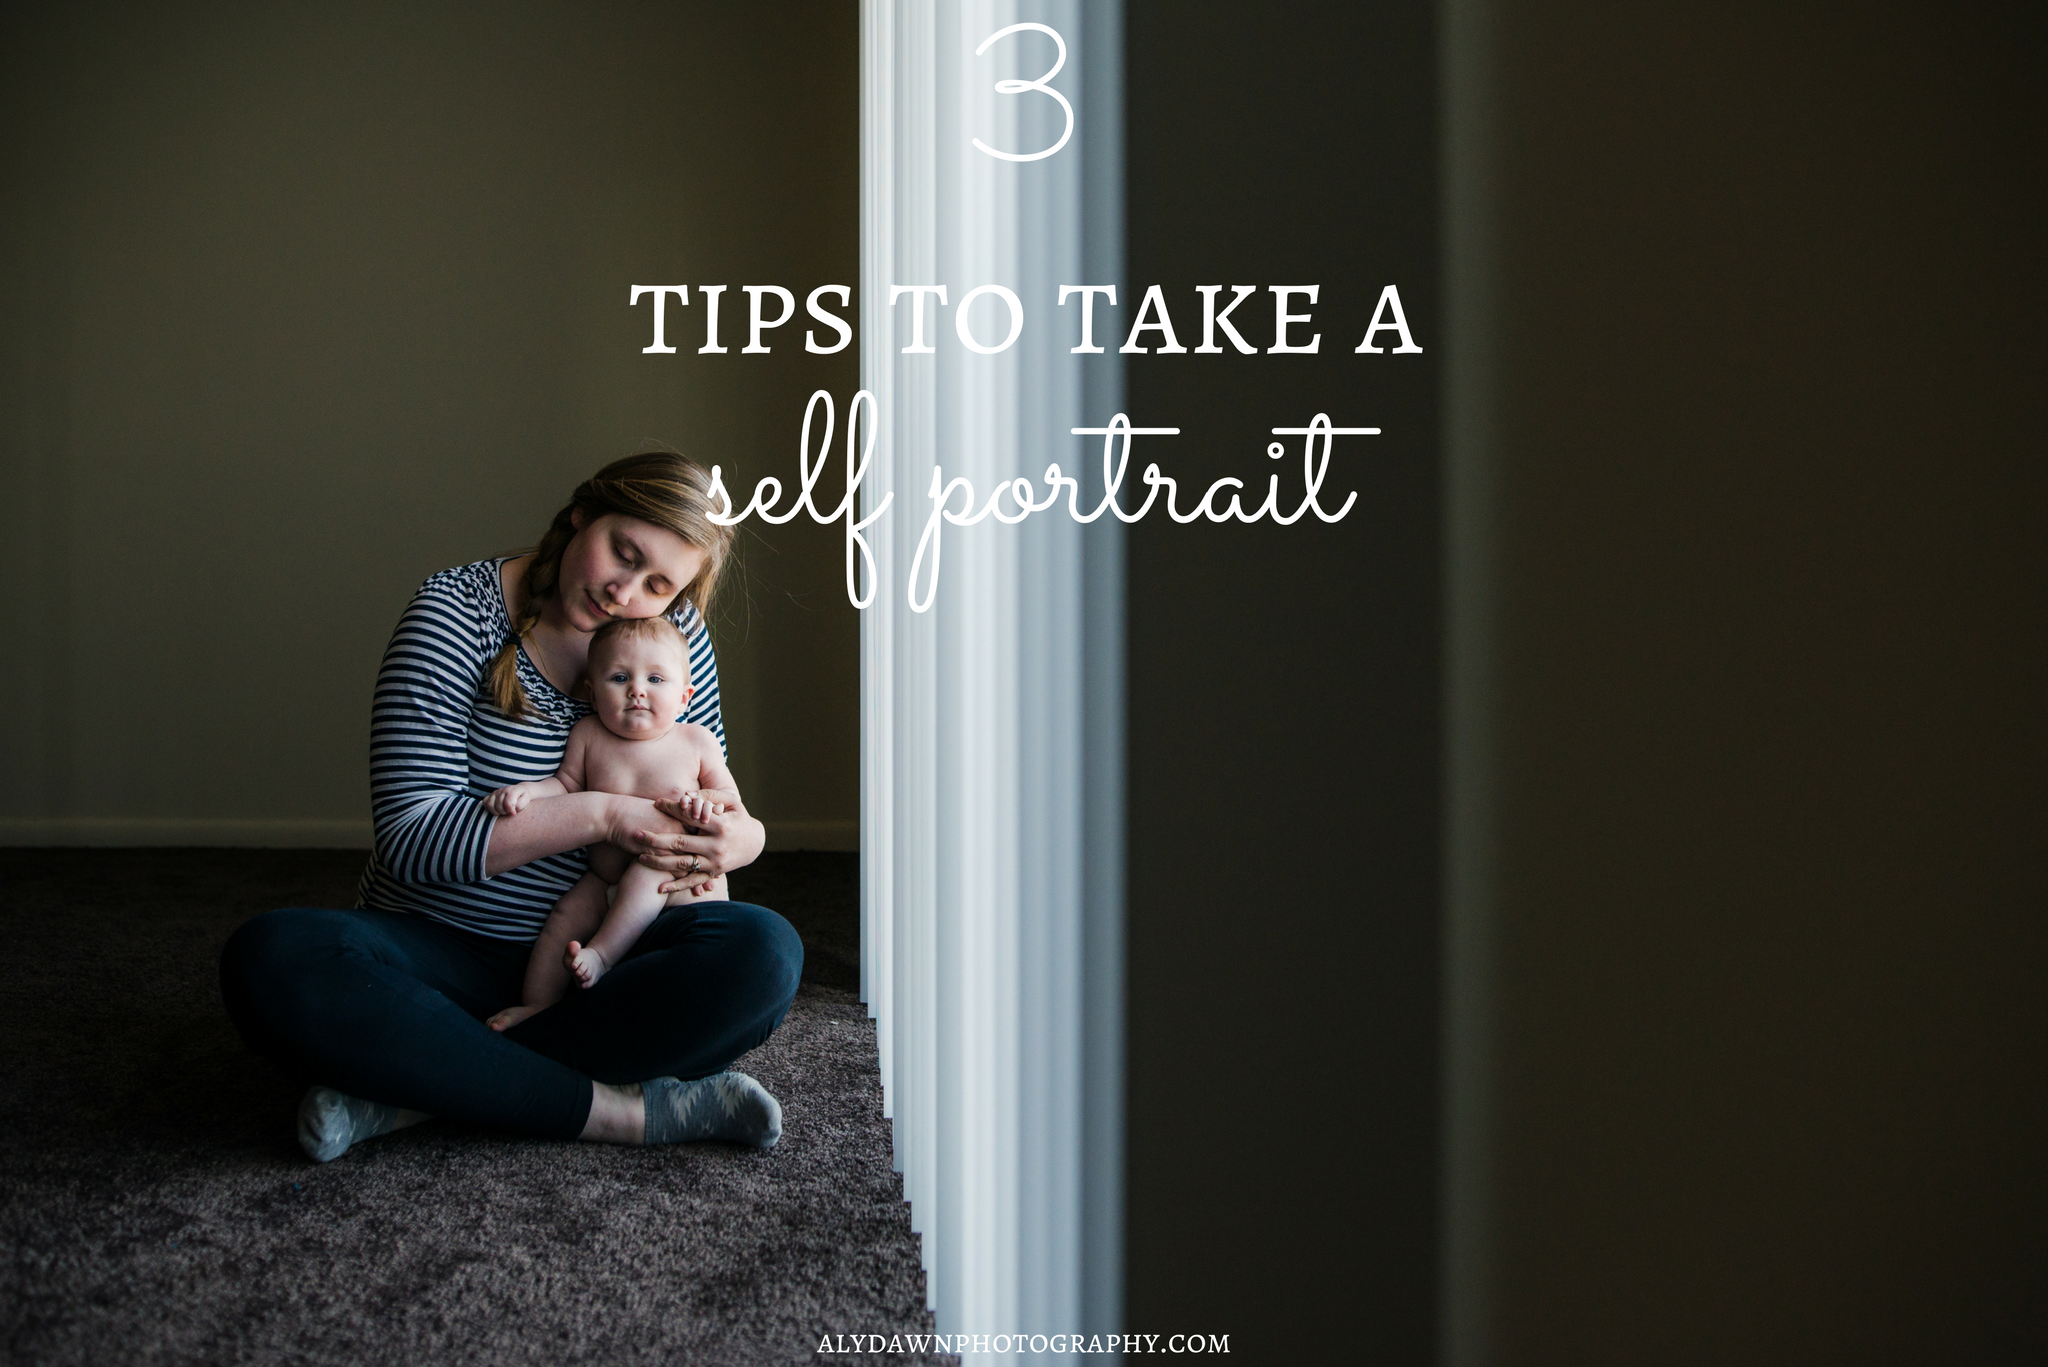 3 Easy Tips To Take A Self Portrait